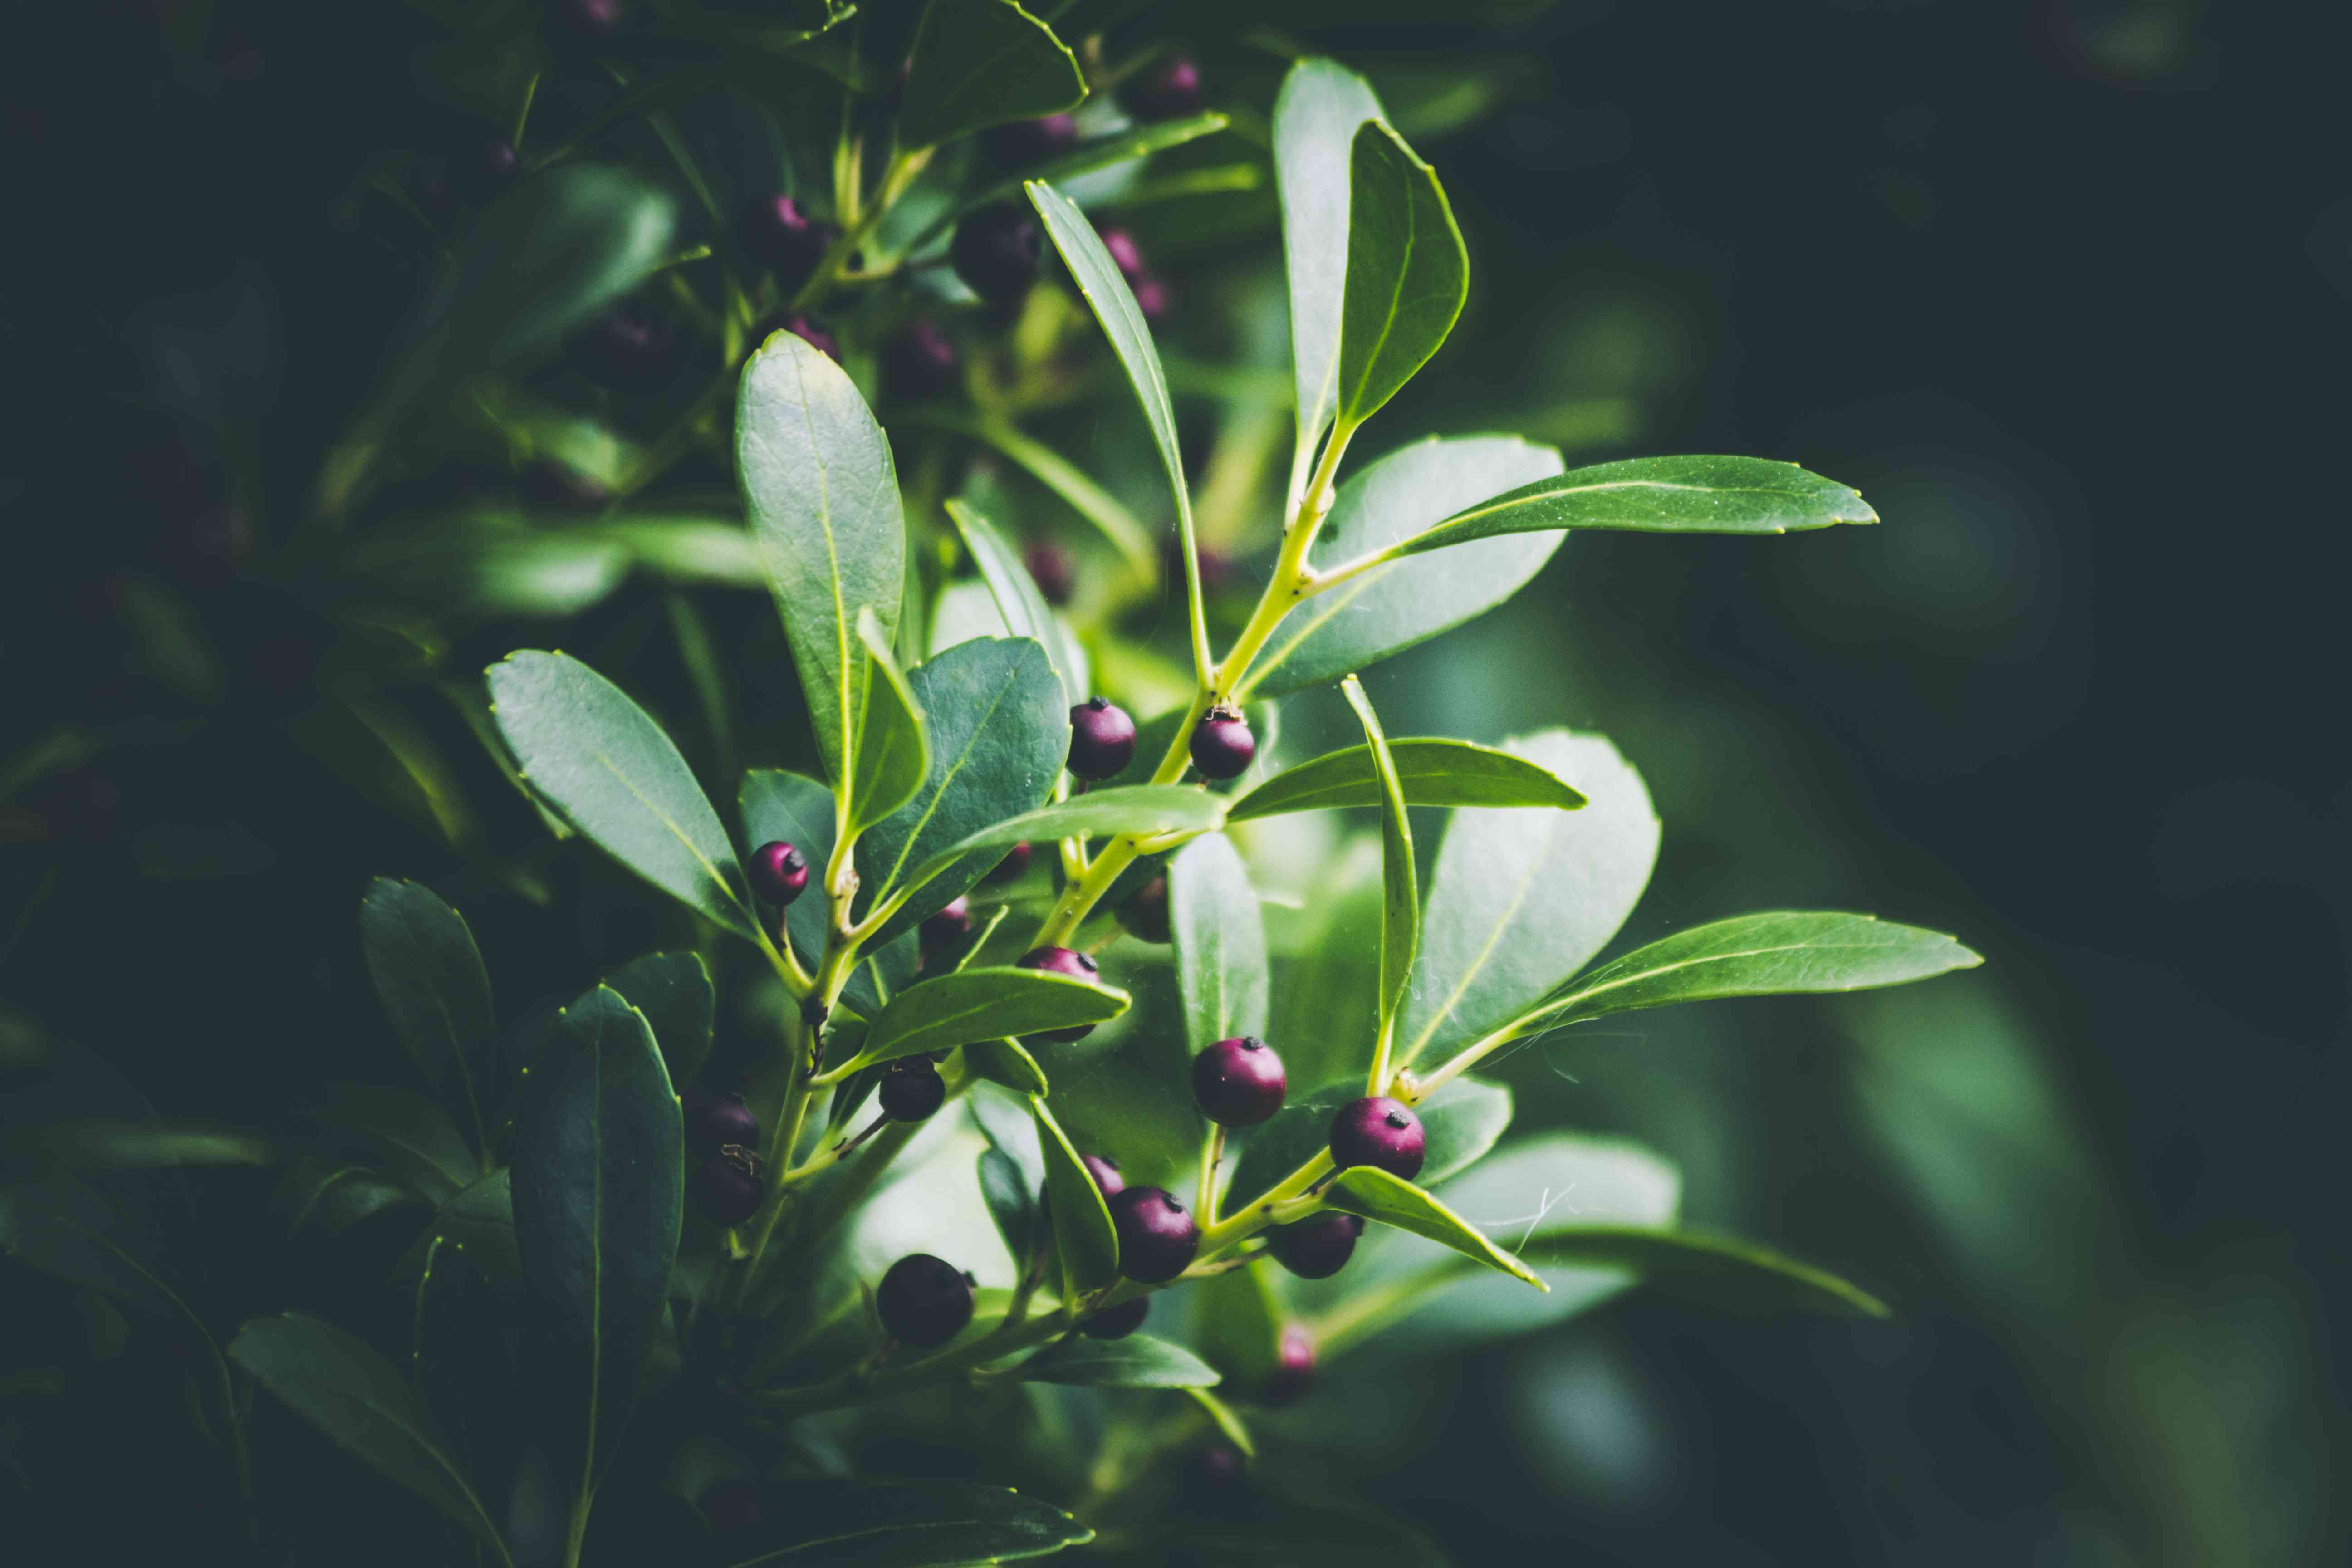 Closeup shot of An Evergreen winterberry or Inkberry Holly